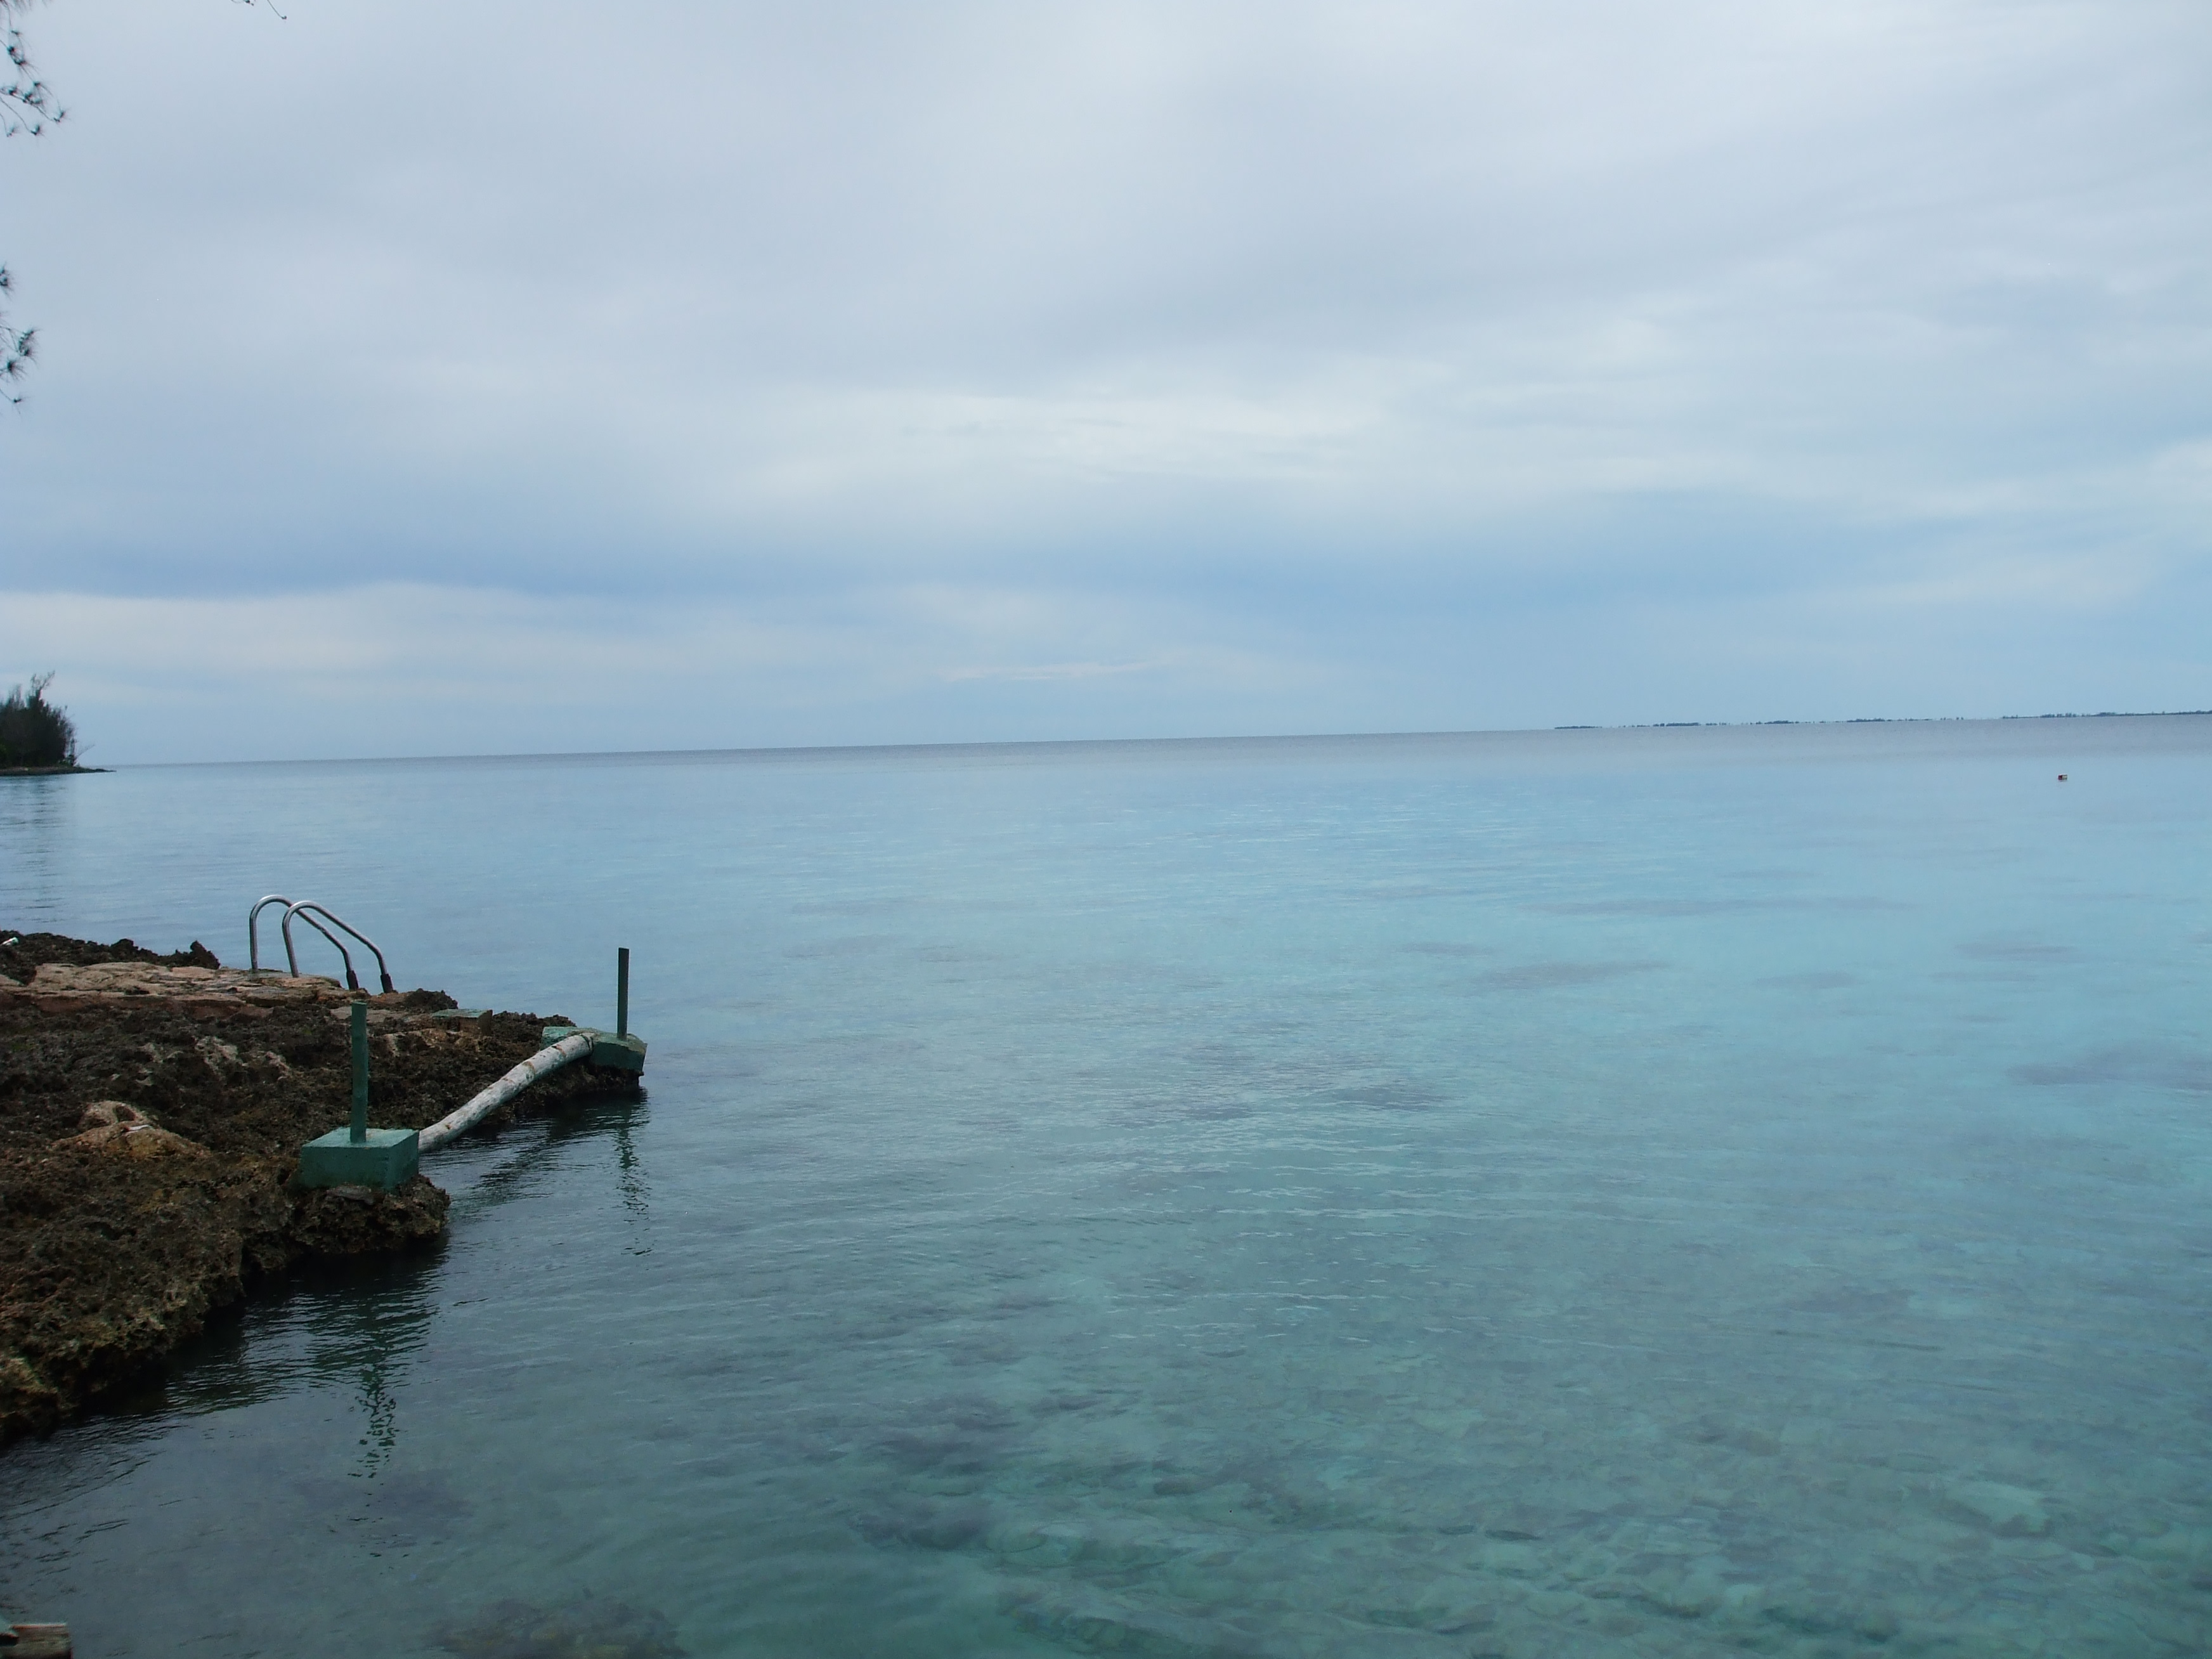 Snorkeling and Diving Area